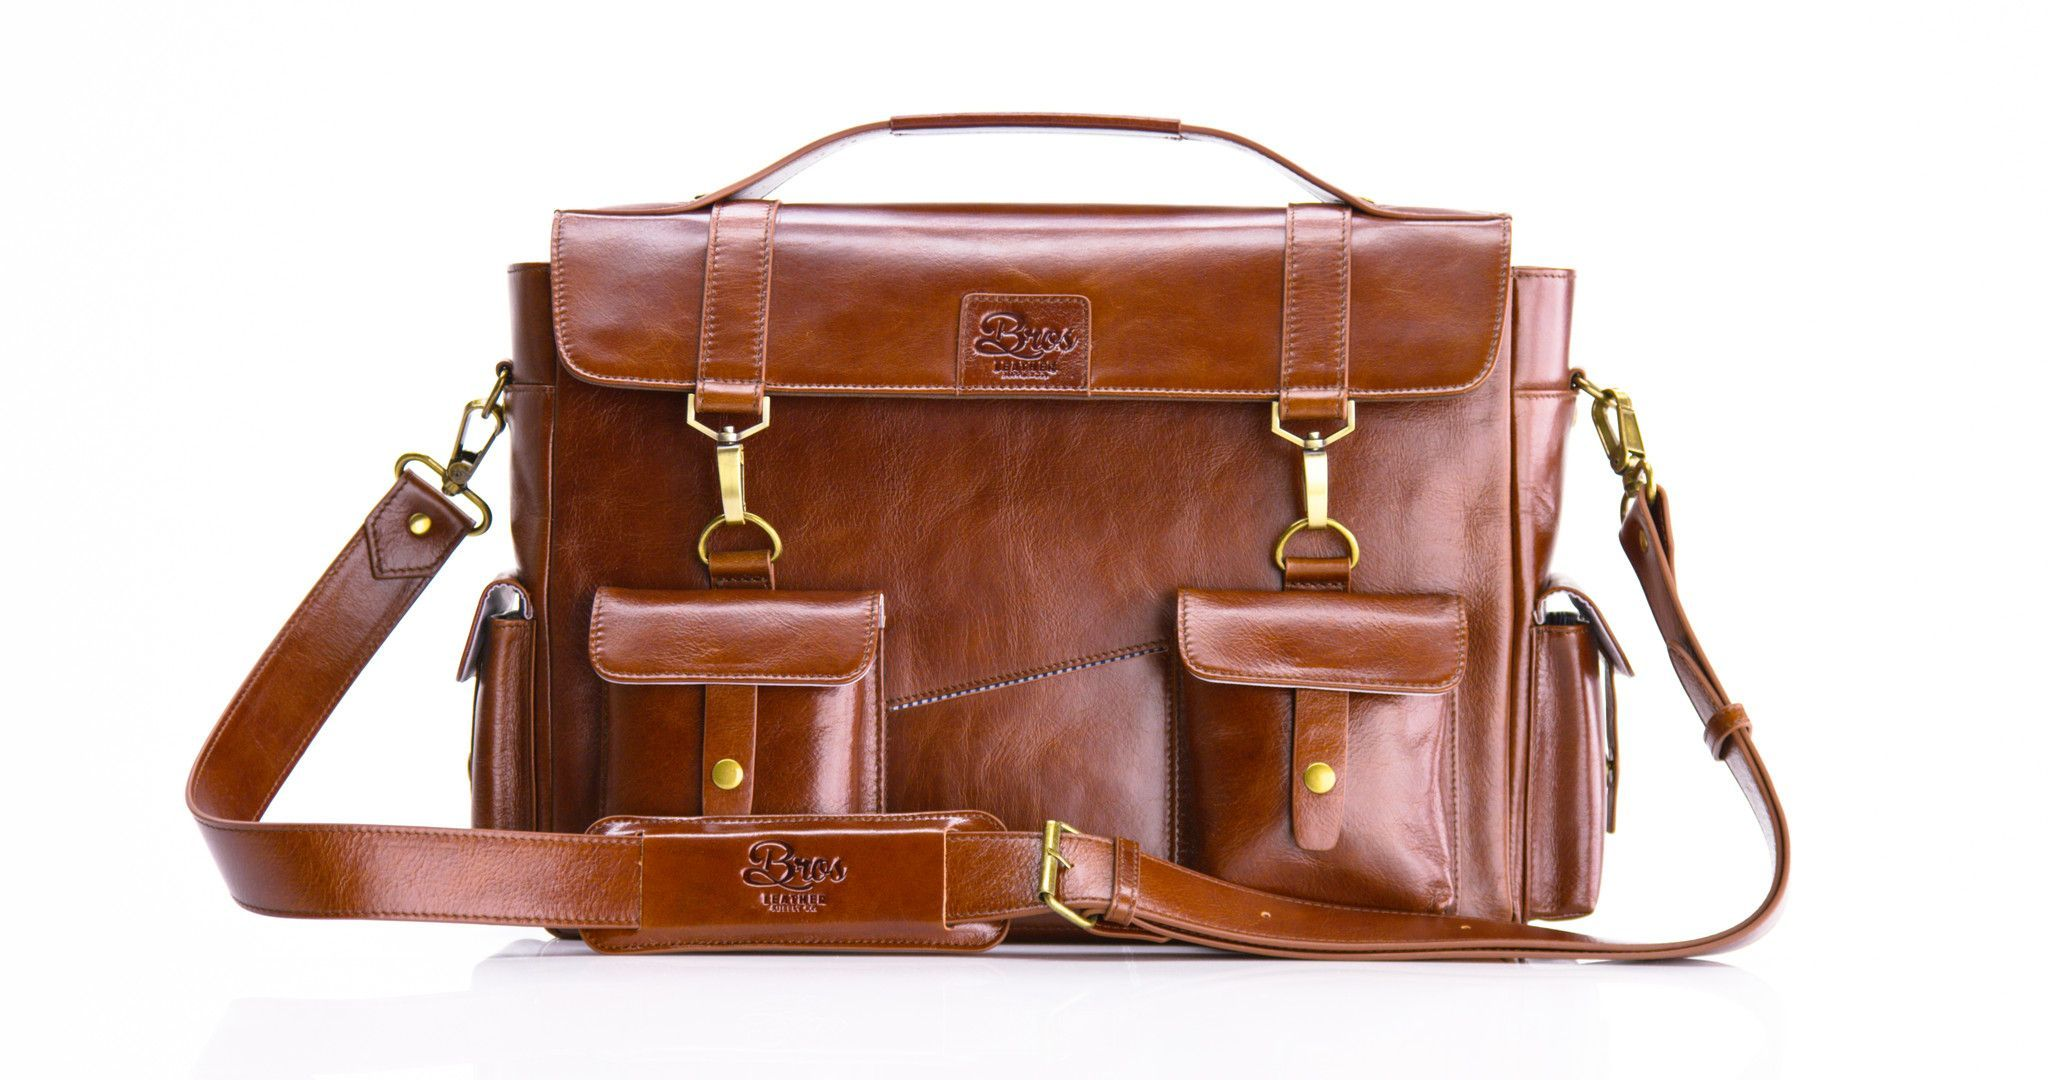 3228be56b2 The Chairman - Handmade   Messenger Bag   Cowhide Leather   Satchel   Carry  On   Briefcase   High Quality   Shoulder Bag   Laptop   iPad   Hip Bag    Travel ...